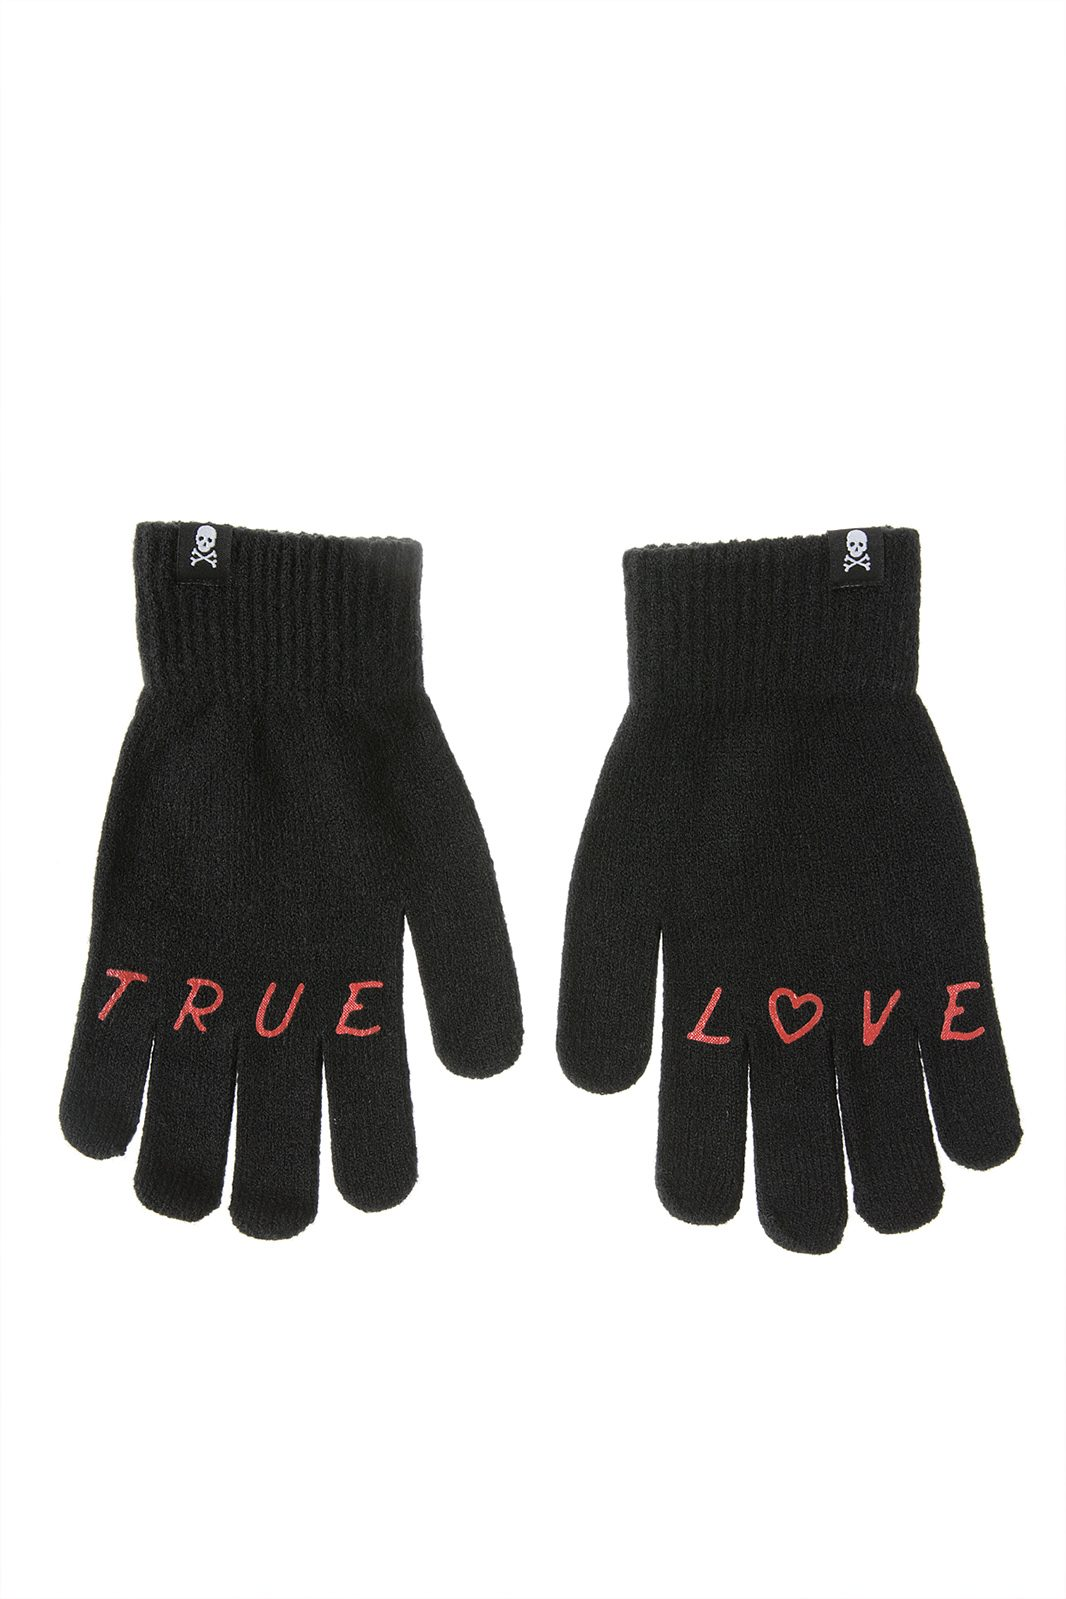 True Love Knit Gloves